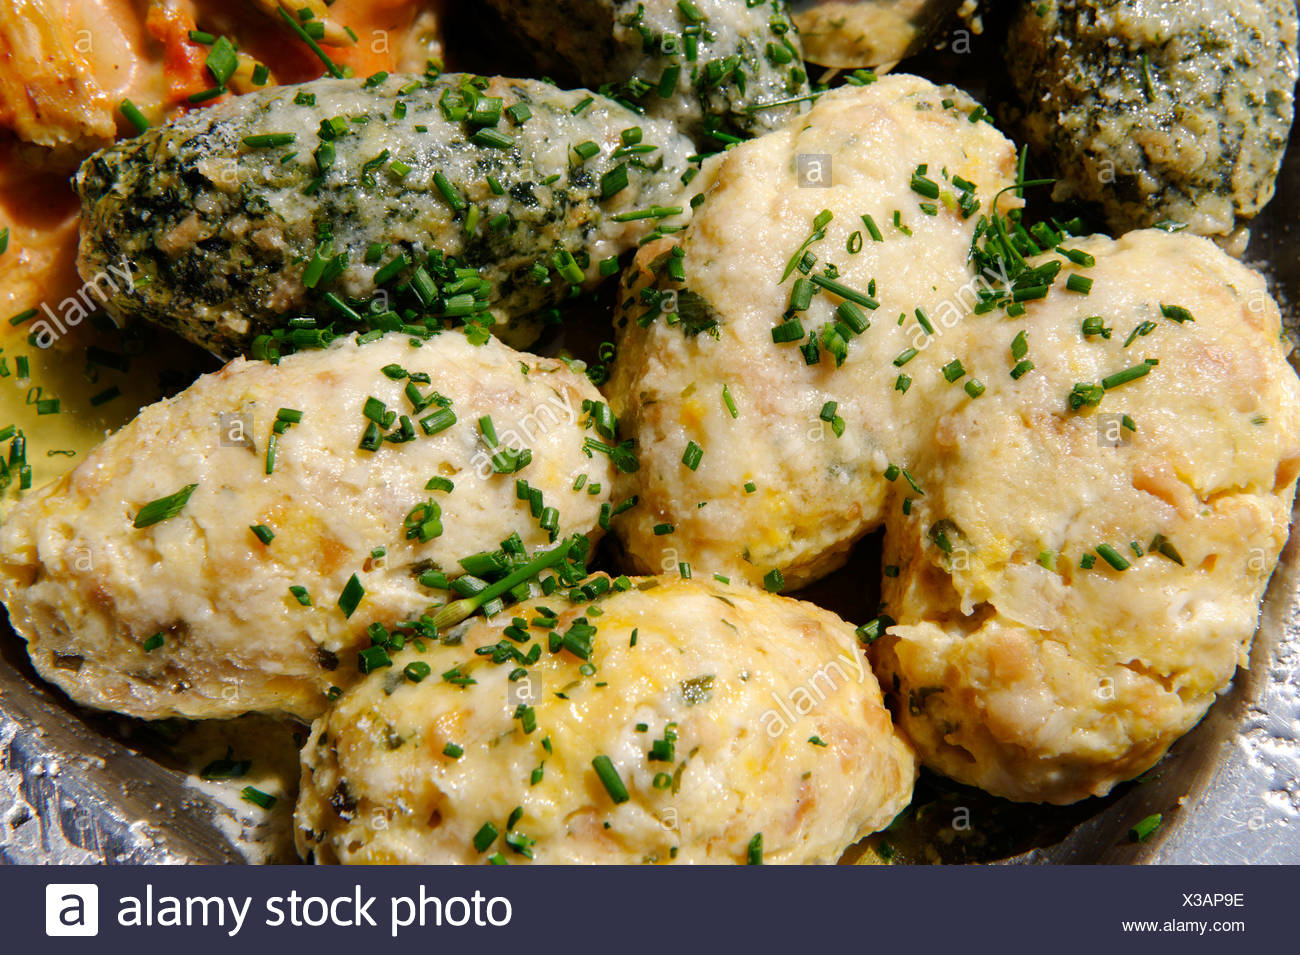 Bacon dumplings, cheese dumplings, spinach dumplings, South Tyrol, Italy, Europe - Stock Image